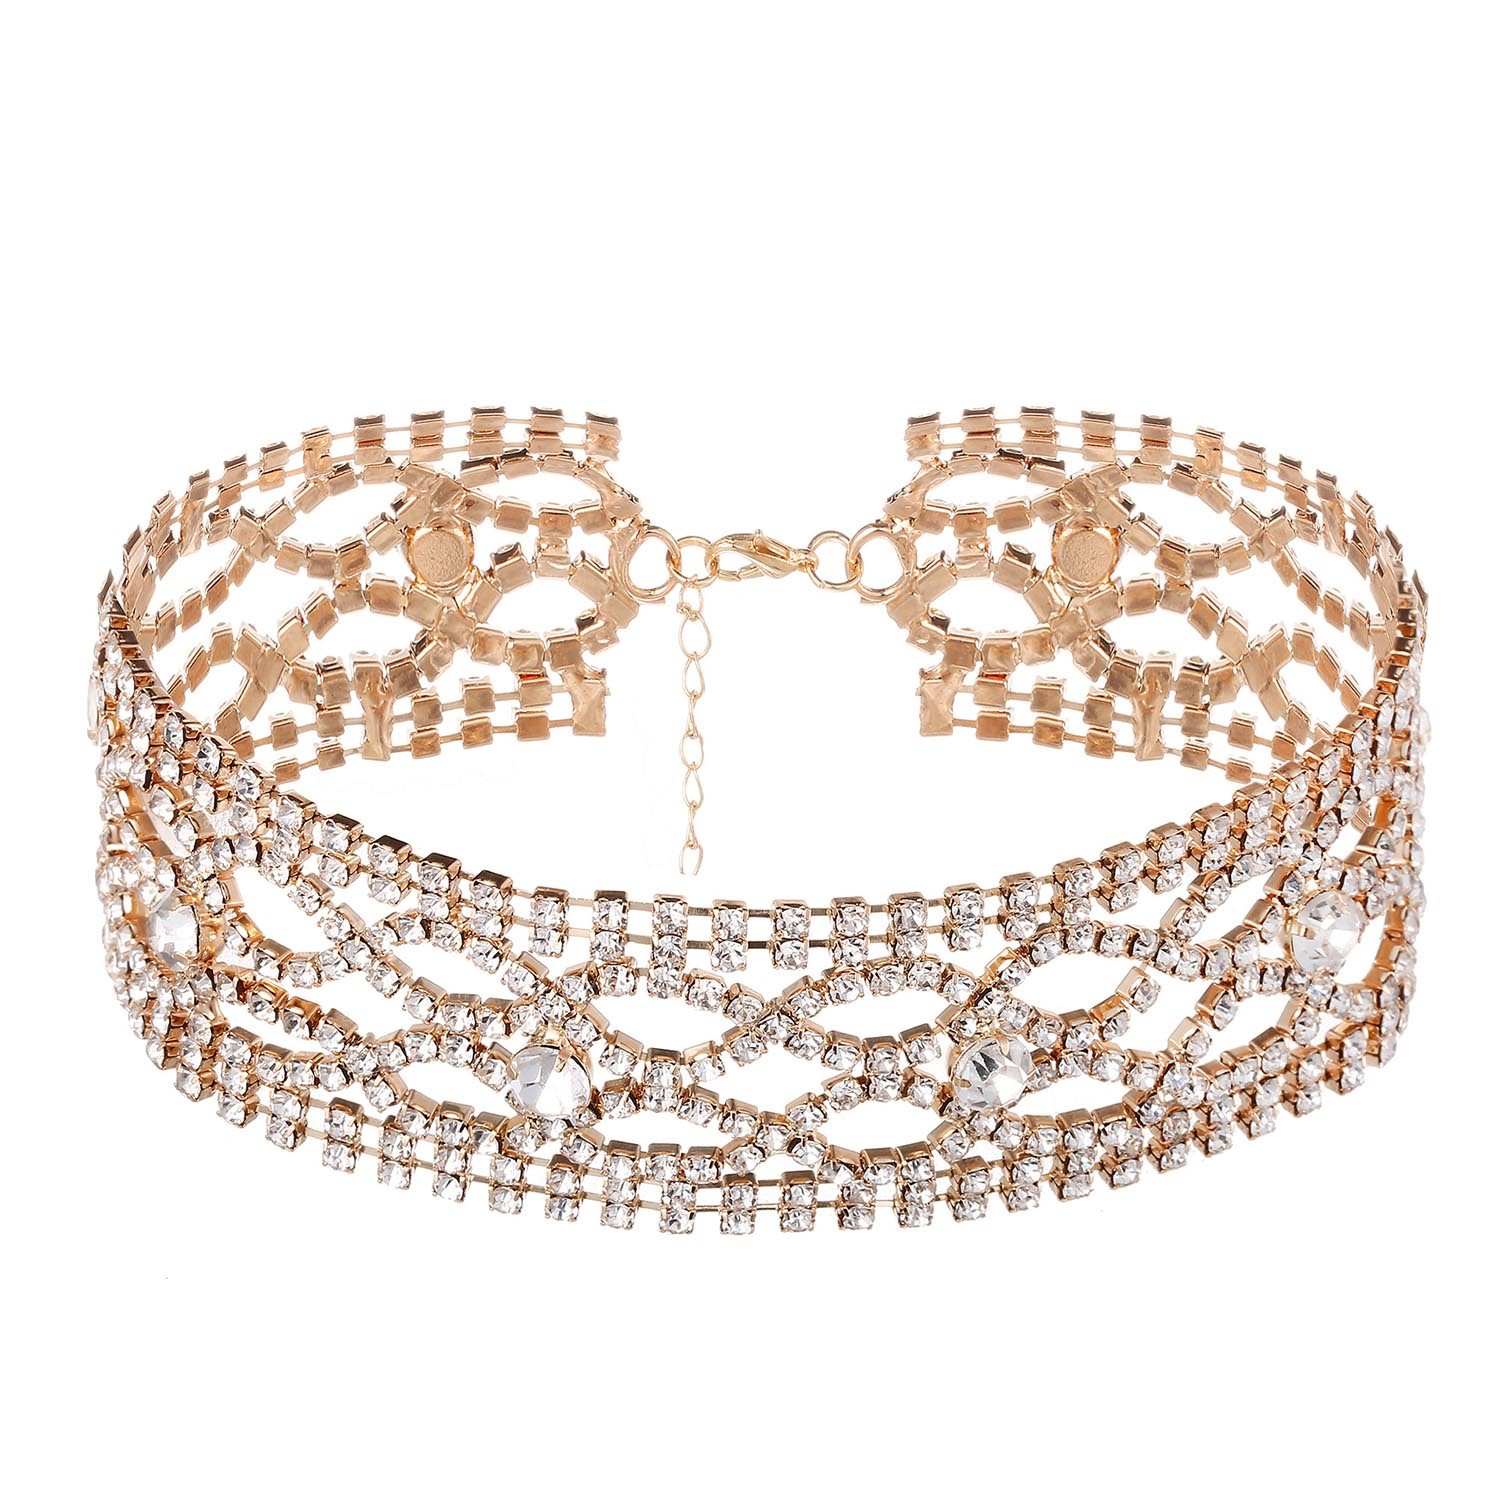 Ericdress Fully-Jewelled Choker Necklace for Women